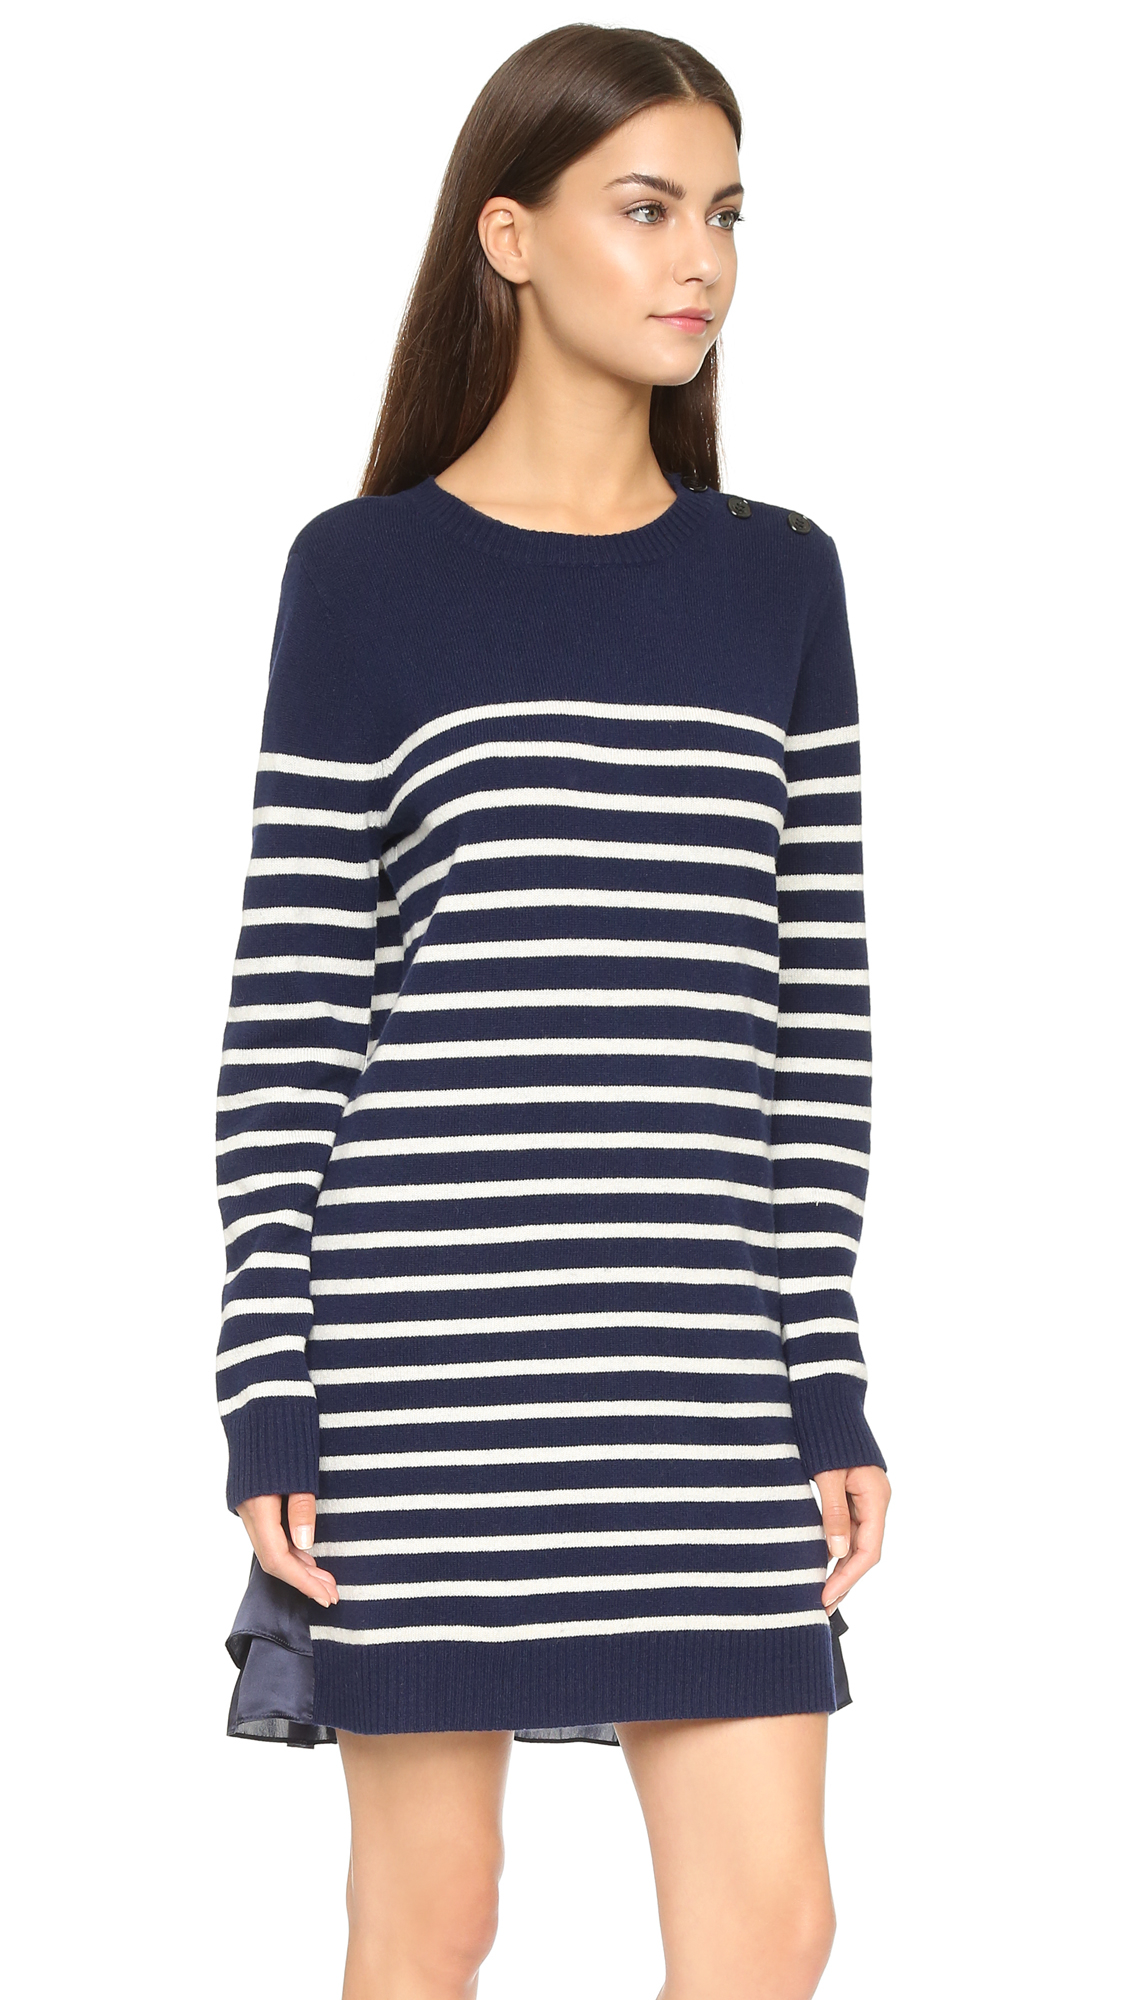 Find great deals on eBay for light blue sweater dress. Shop with confidence.